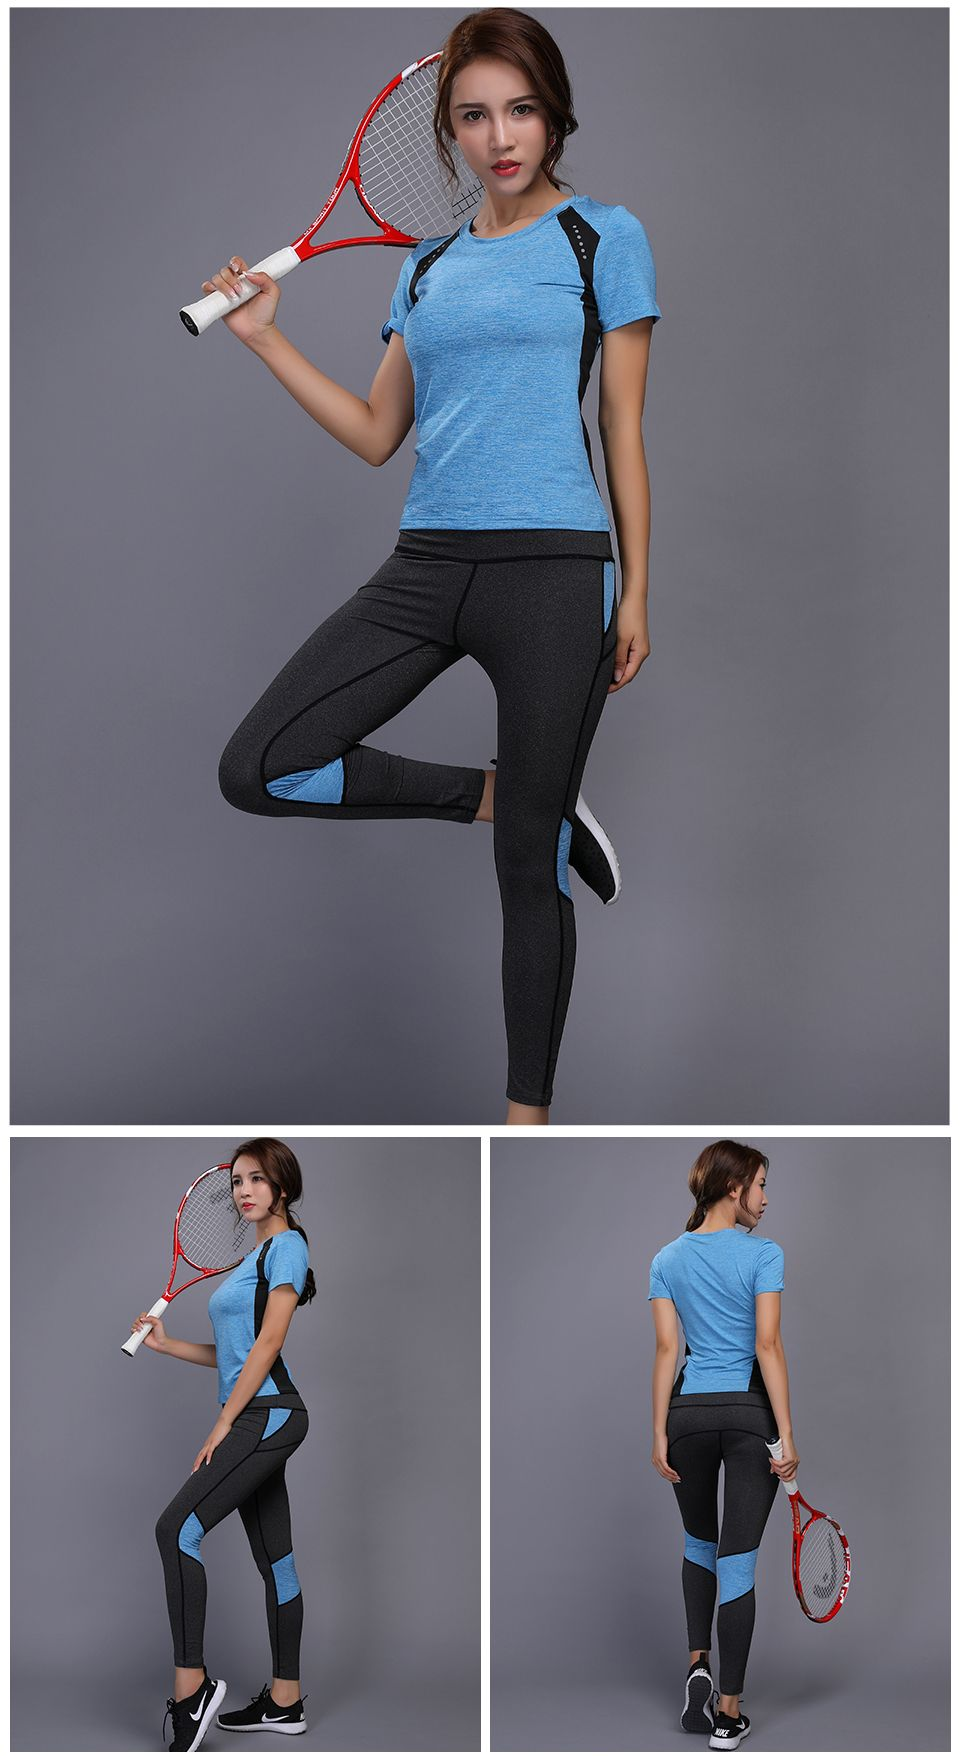 9a4bb31fc33 LYNSKEY Women Yoga Set Gym Fitness Clothes Tennis Shirt Pants Running  Tights Jogging Workout Yoga Leggings Sport Suit